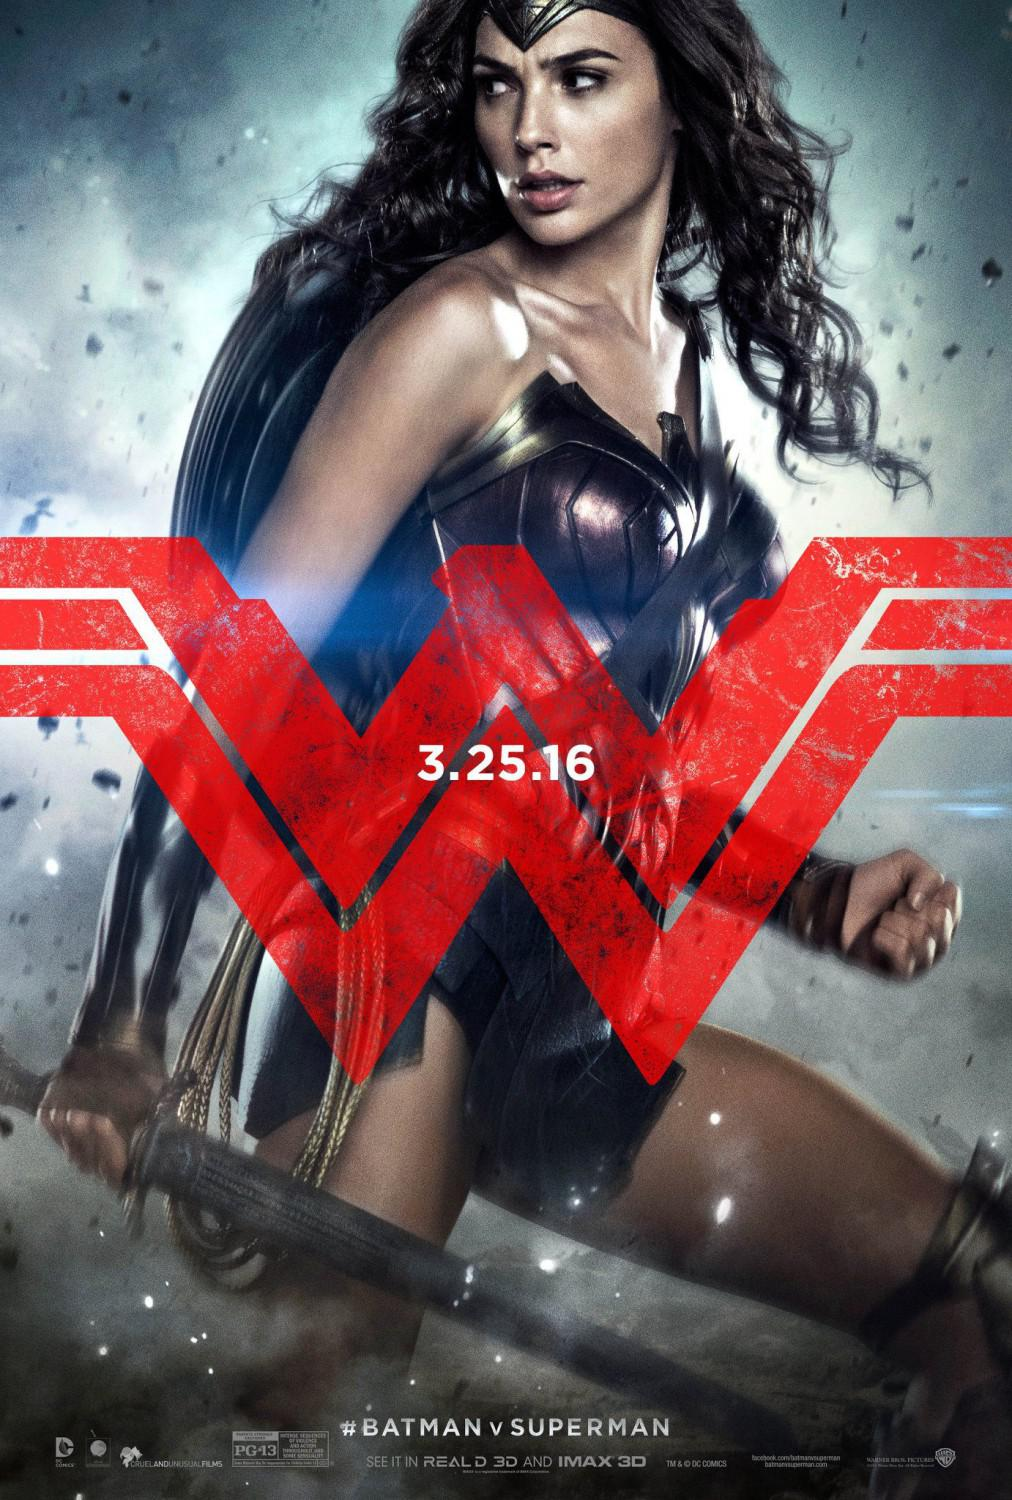 Batman Vs Superman - Dawn of Justice - Wonder Woman